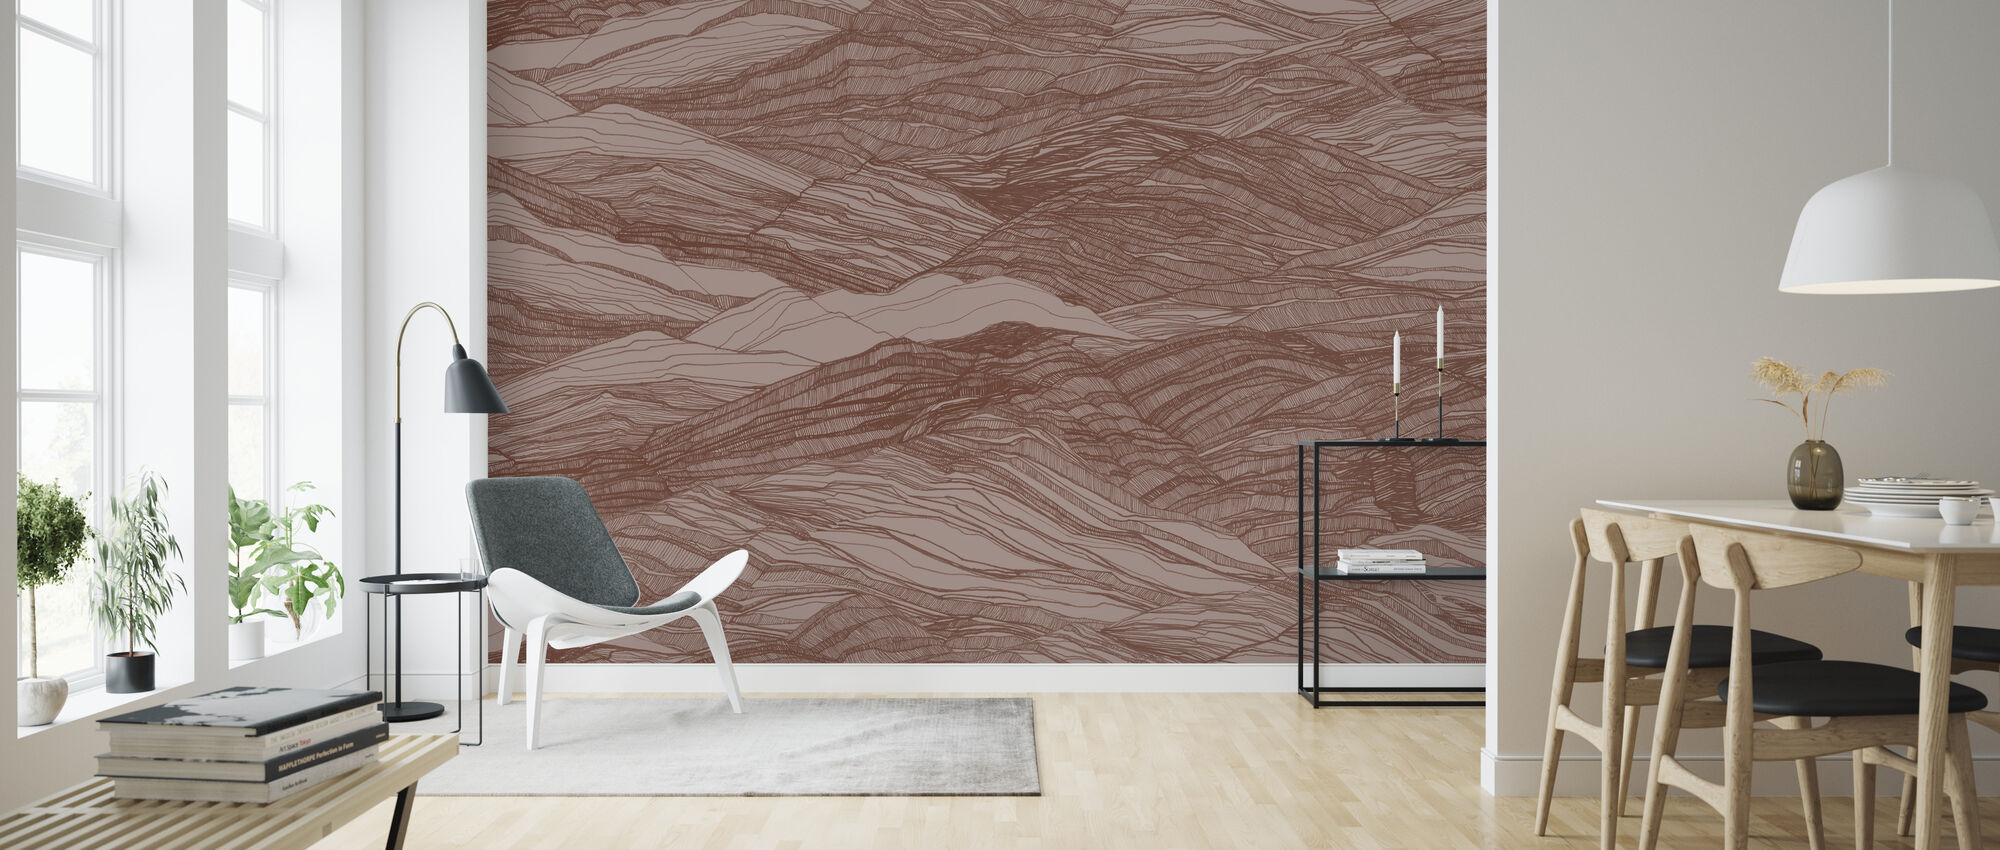 Duna Large - Red Clay - Wallpaper - Living Room